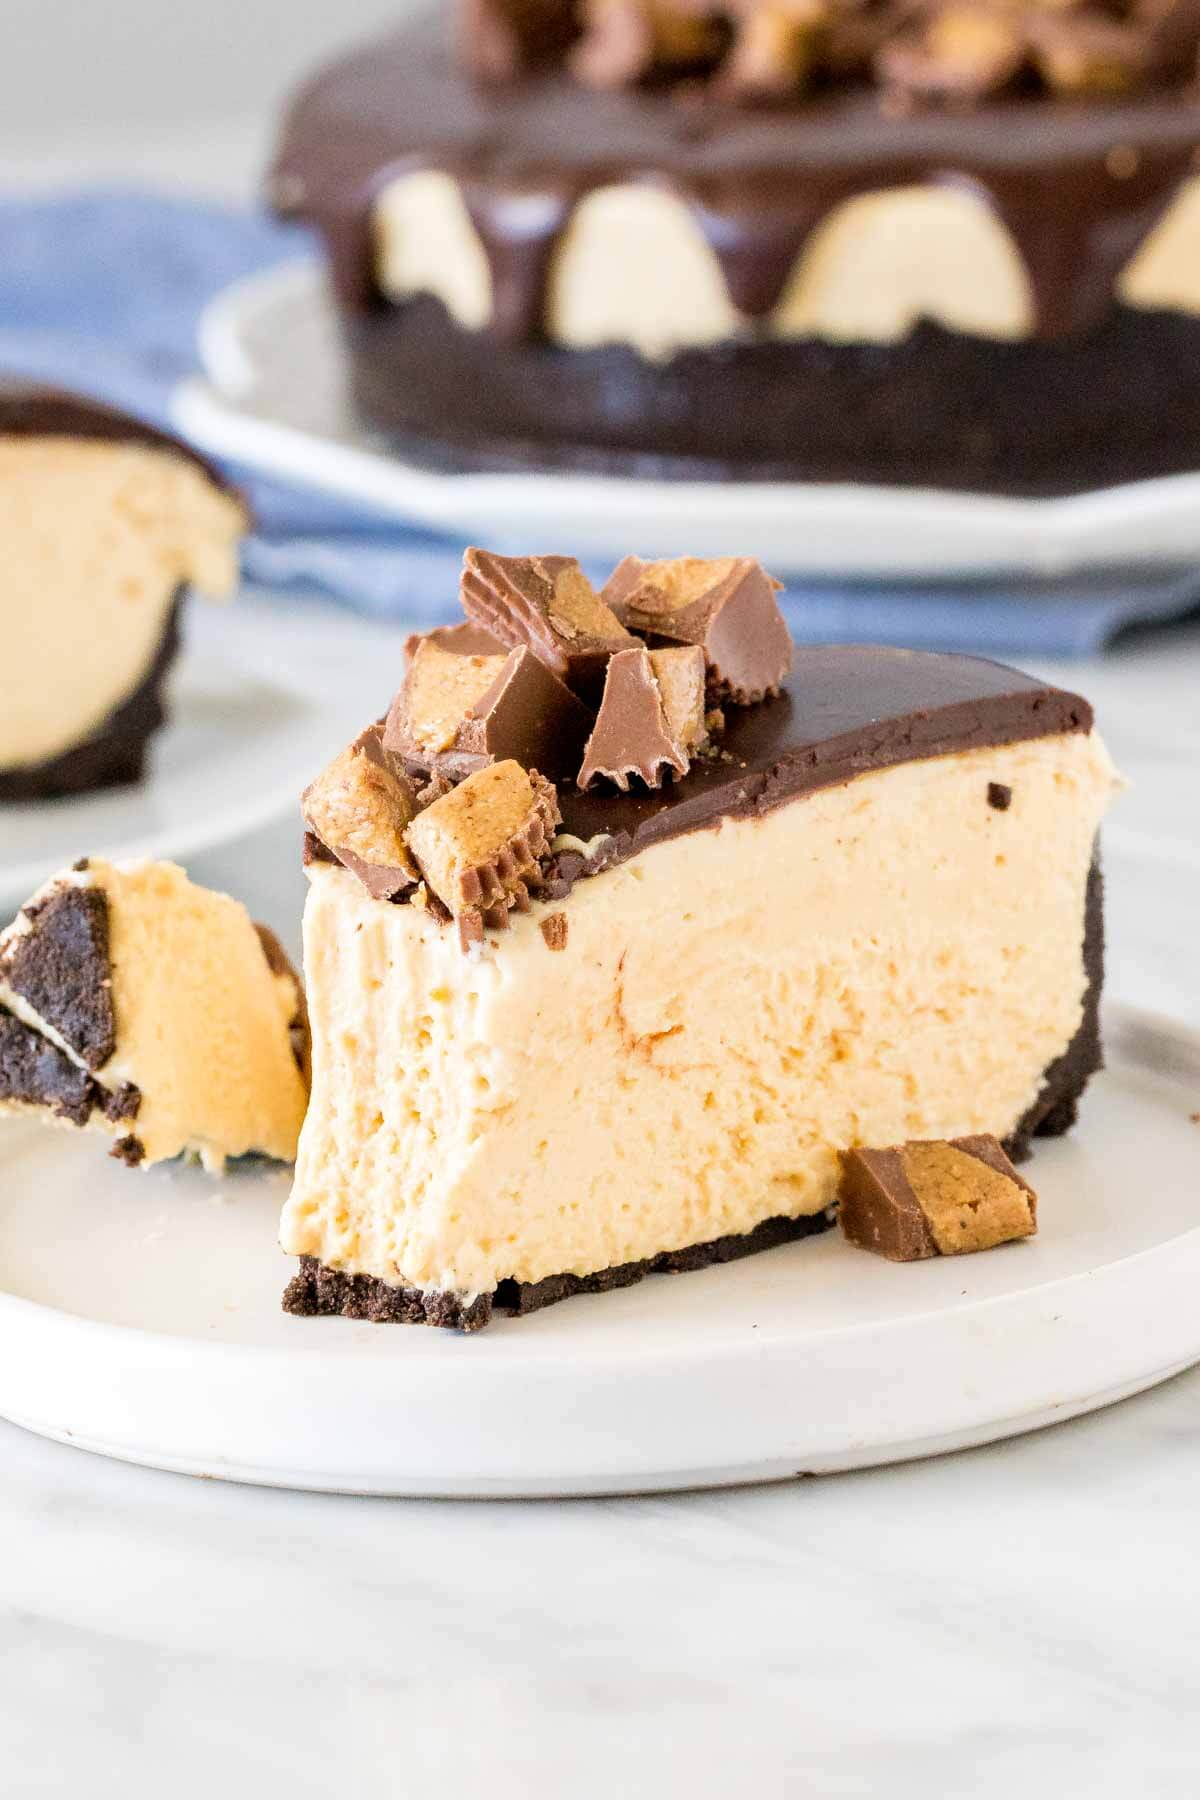 Slice of peanut butter cheesecake with a bite taken out of it.